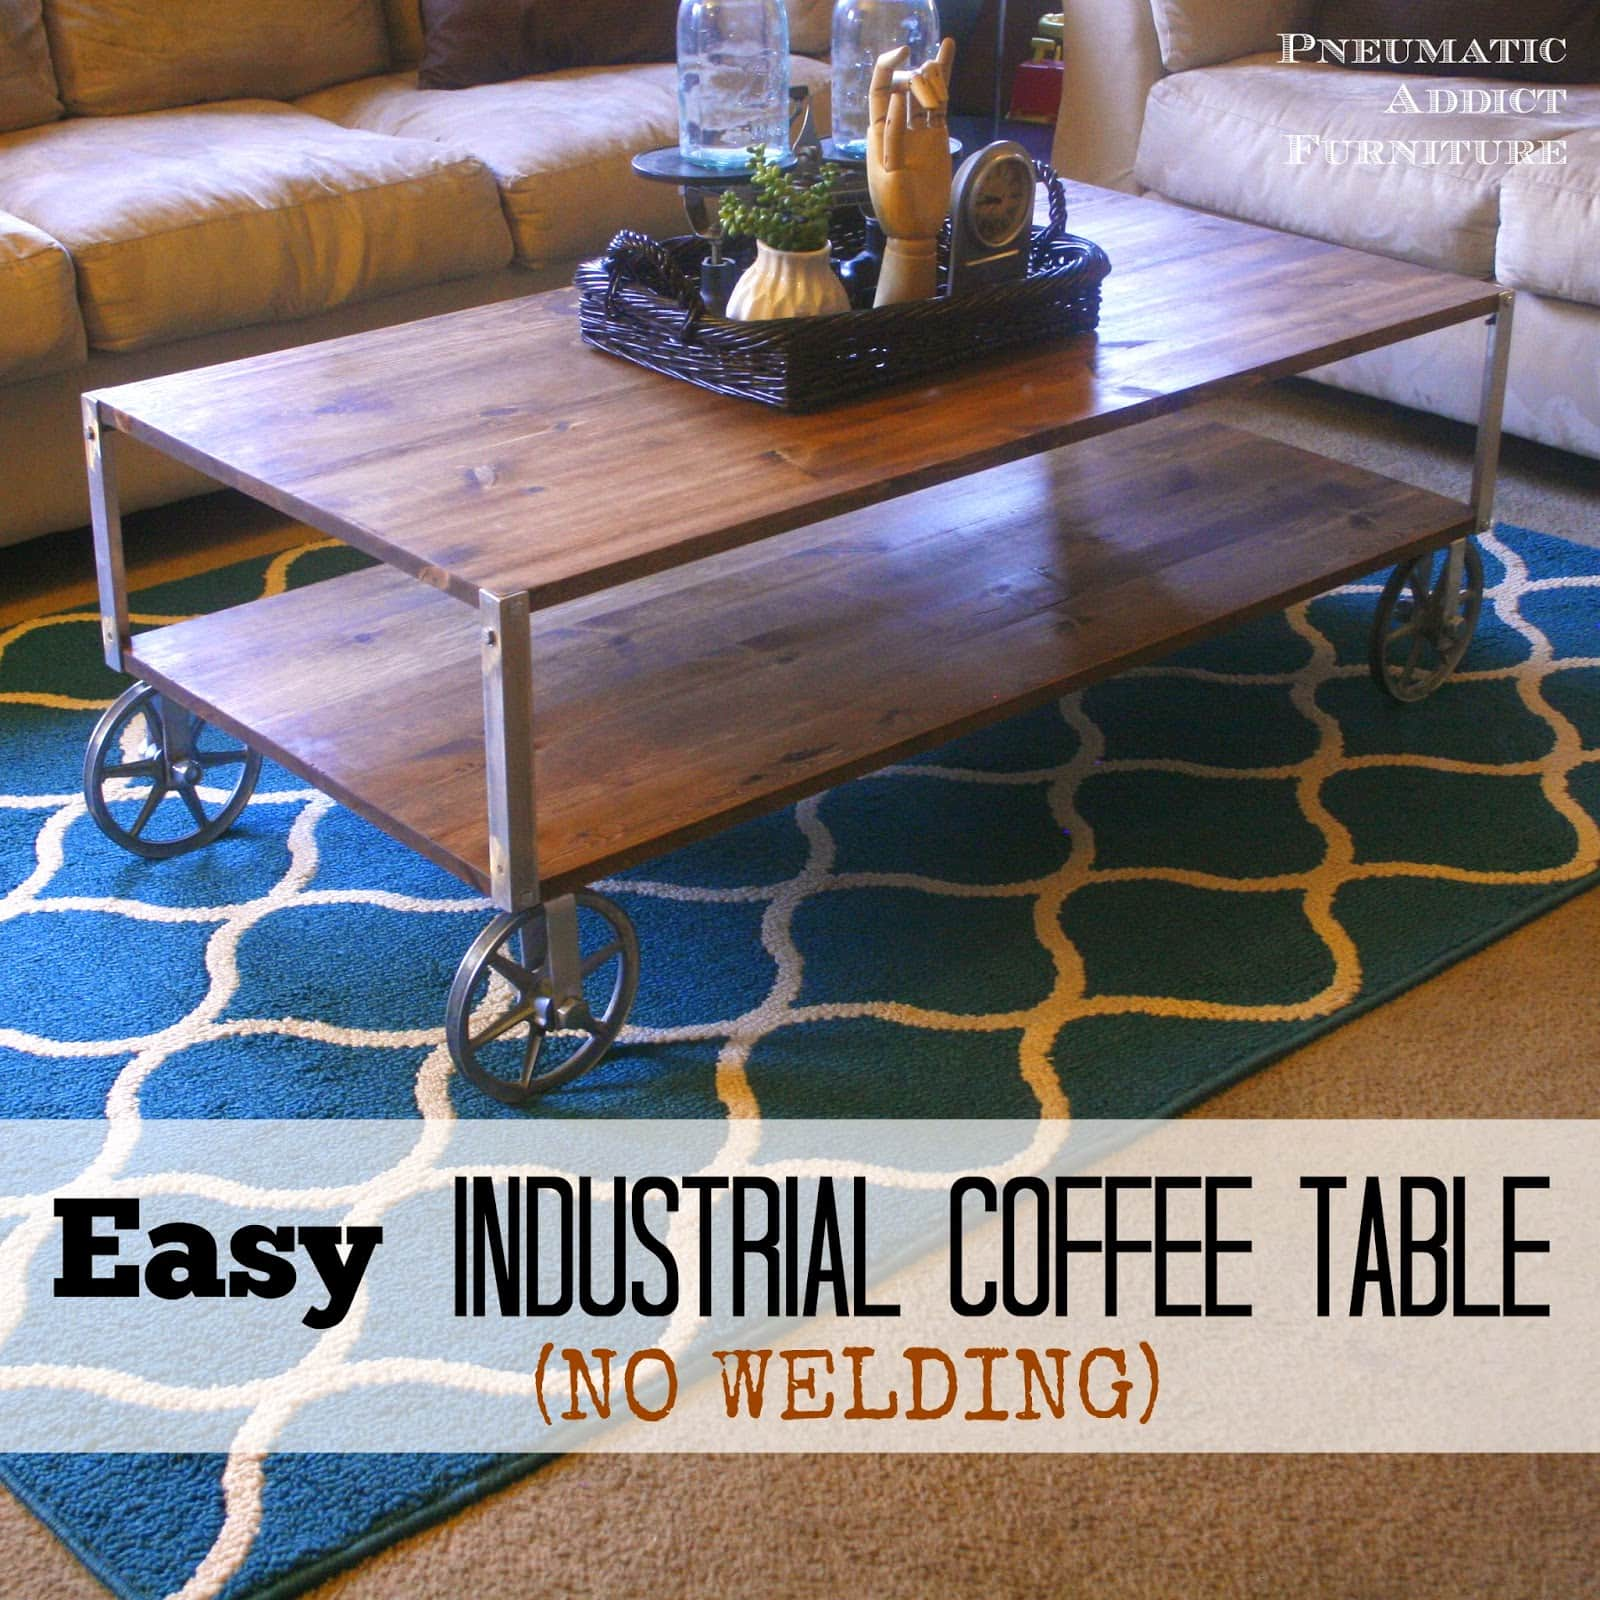 easy-industrial-coffee-table-title